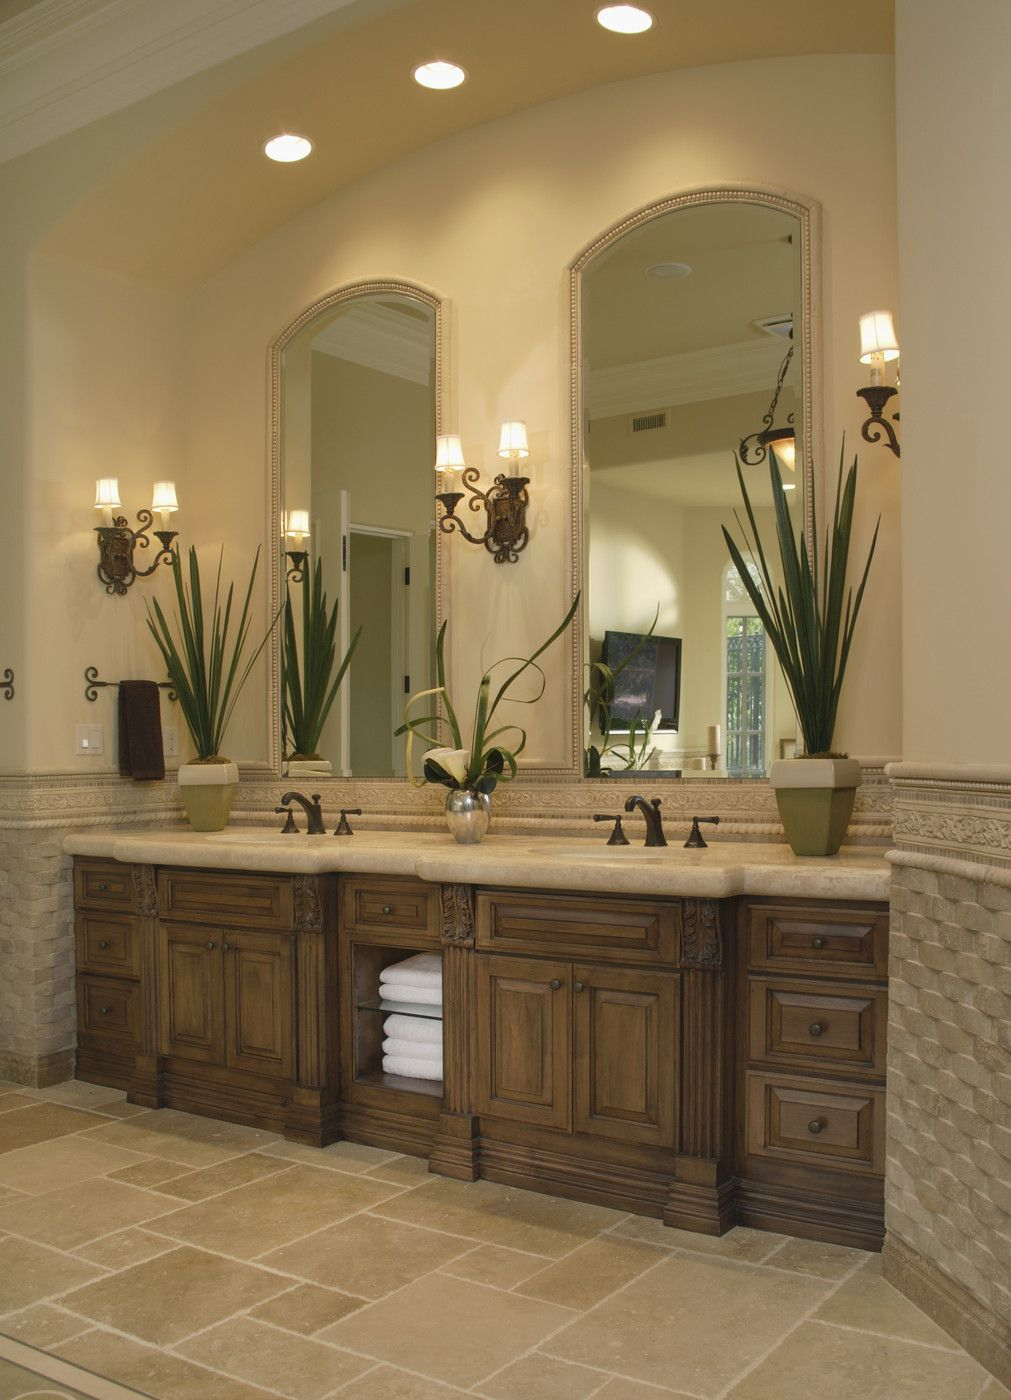 Rise and shine bathroom vanity lighting tips - Images of bathroom vanity lighting ...